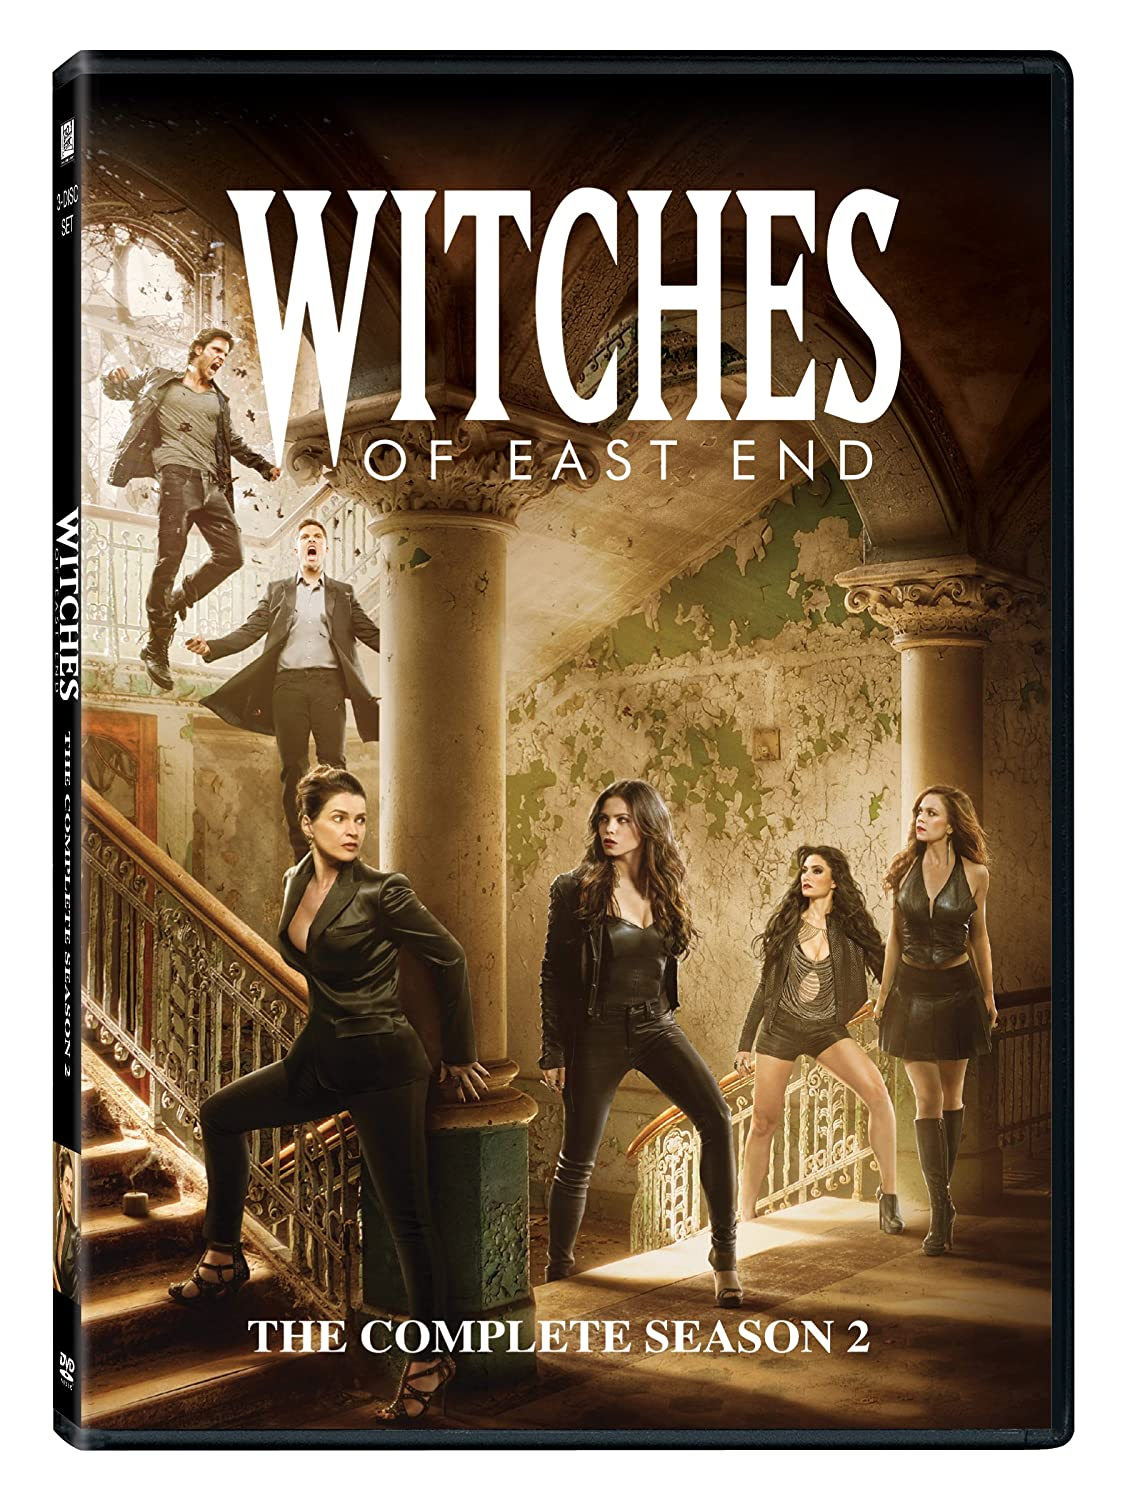 Amazon Com Witches Of East End The Complete Season 2 Turi Meyer Al Septien Shawn Williamson Melissa De La Cruz Maggie Friedman Julia Ormond Madchen Amick Jenna Dewan Tatum Rachel Boston Daniel Ditomasso